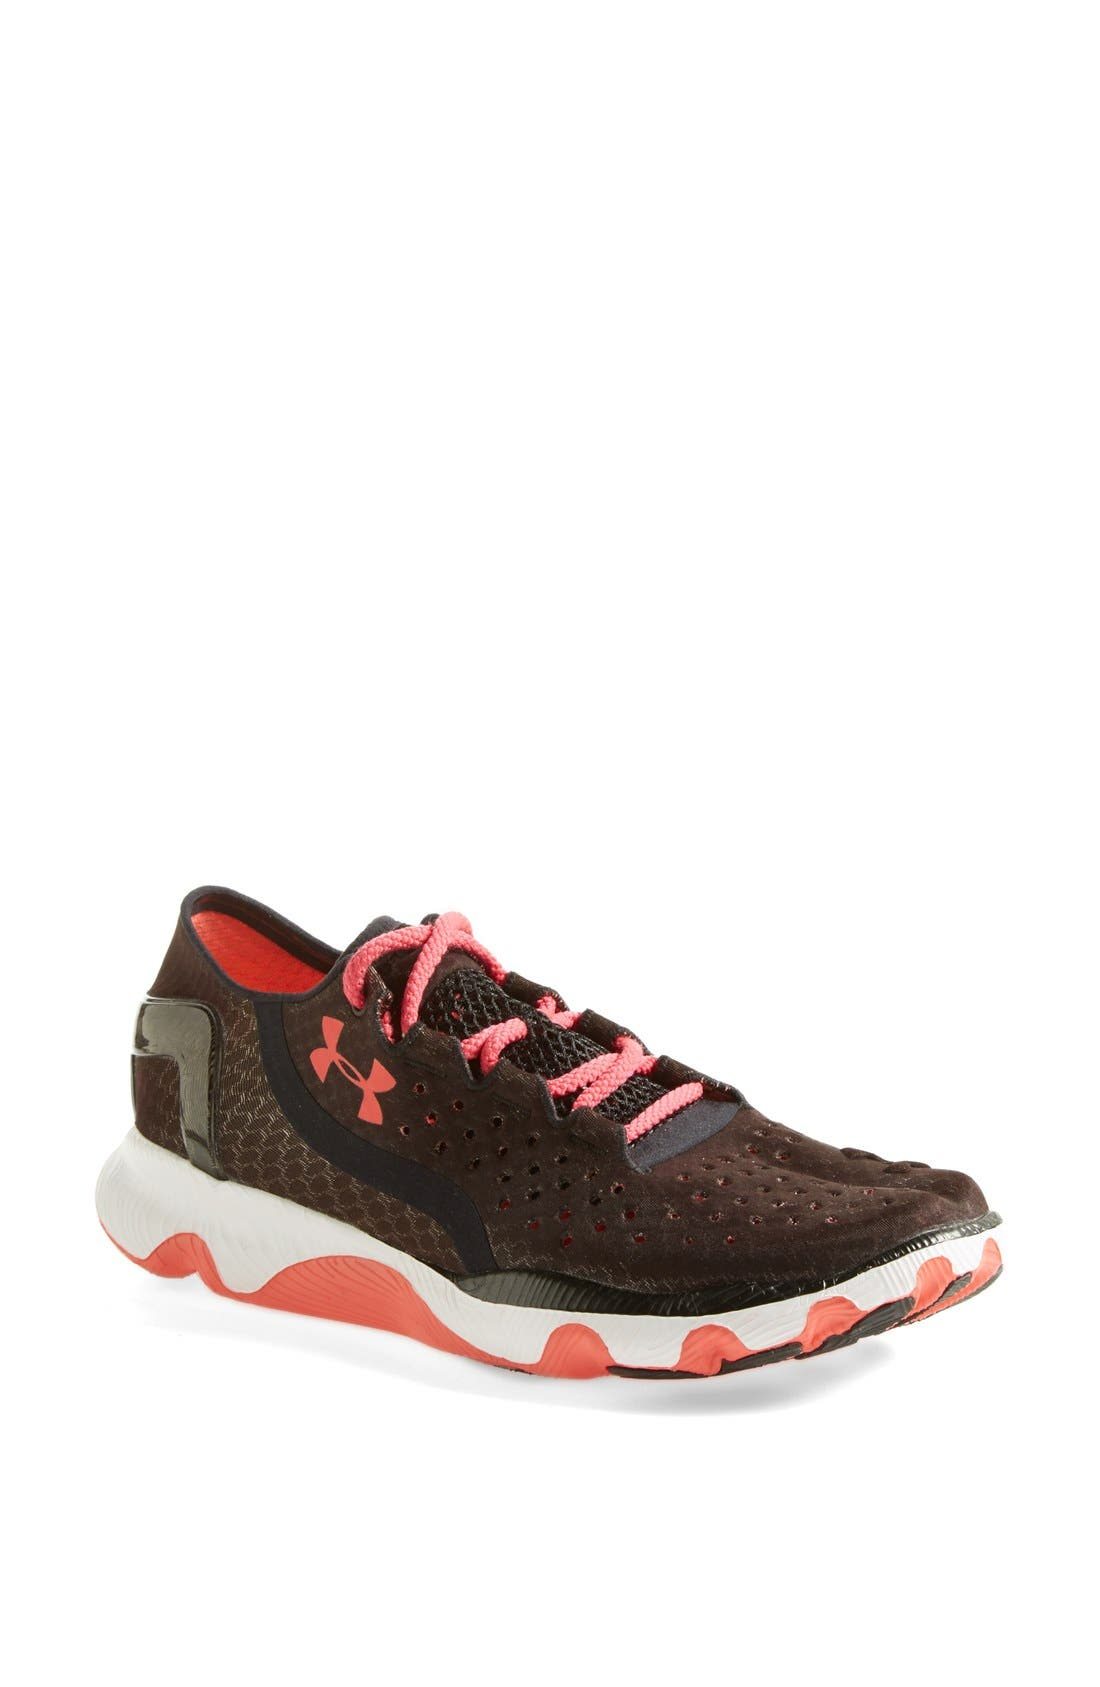 Alternate Image 1 Selected - Under Armour 'Speedform' Running Shoe (Women)